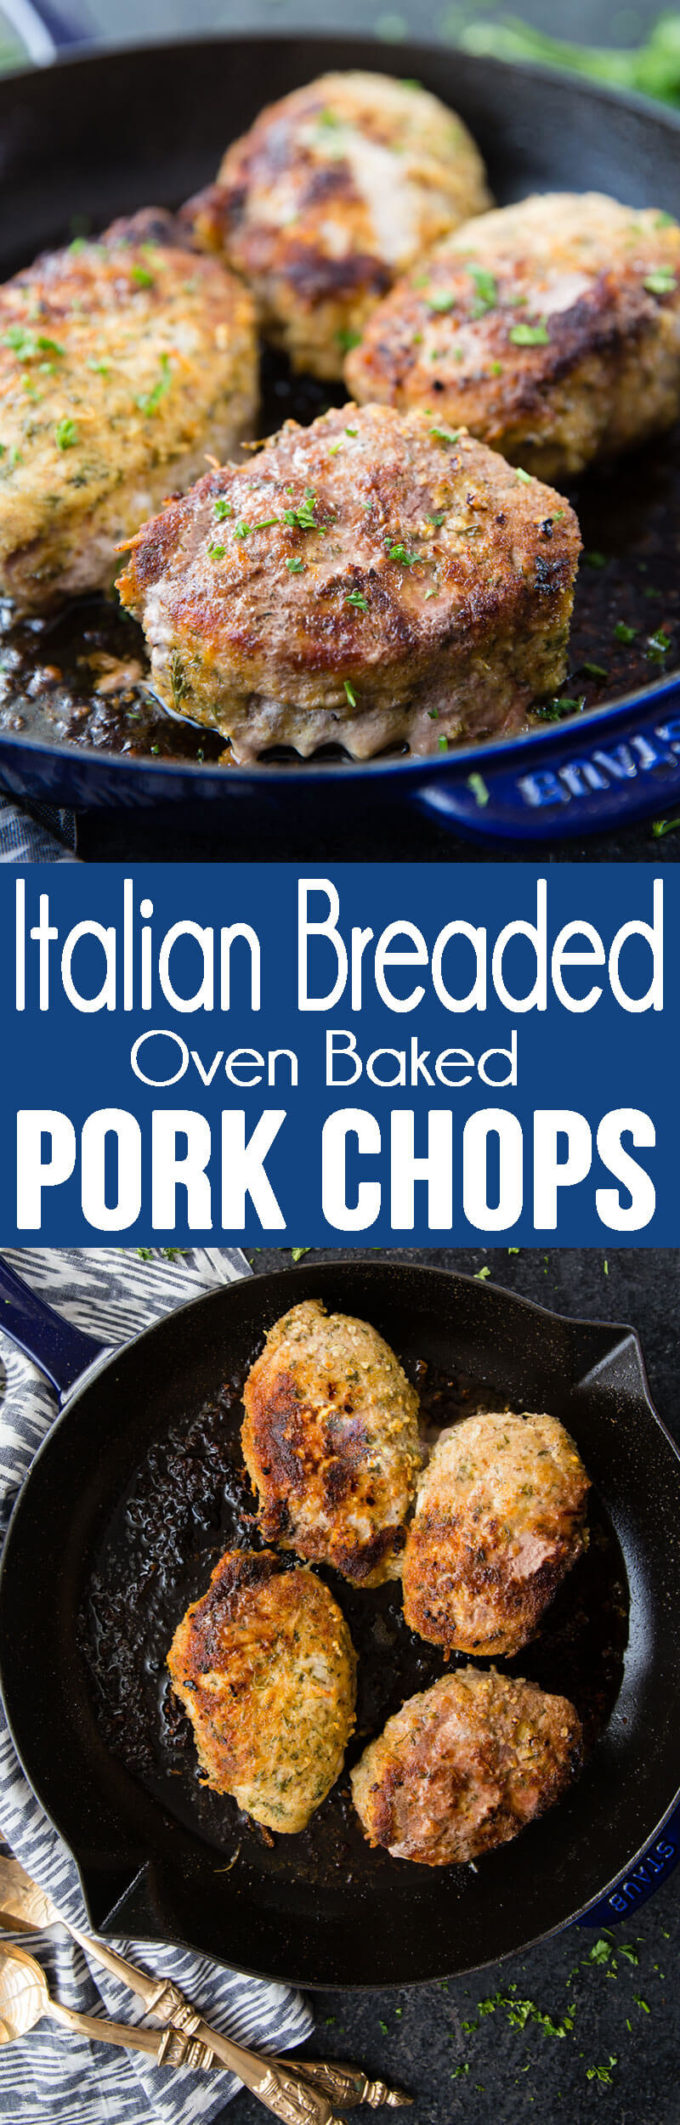 Oven baked pork chops that are breaded in Italian breadcrumbs and parmesan